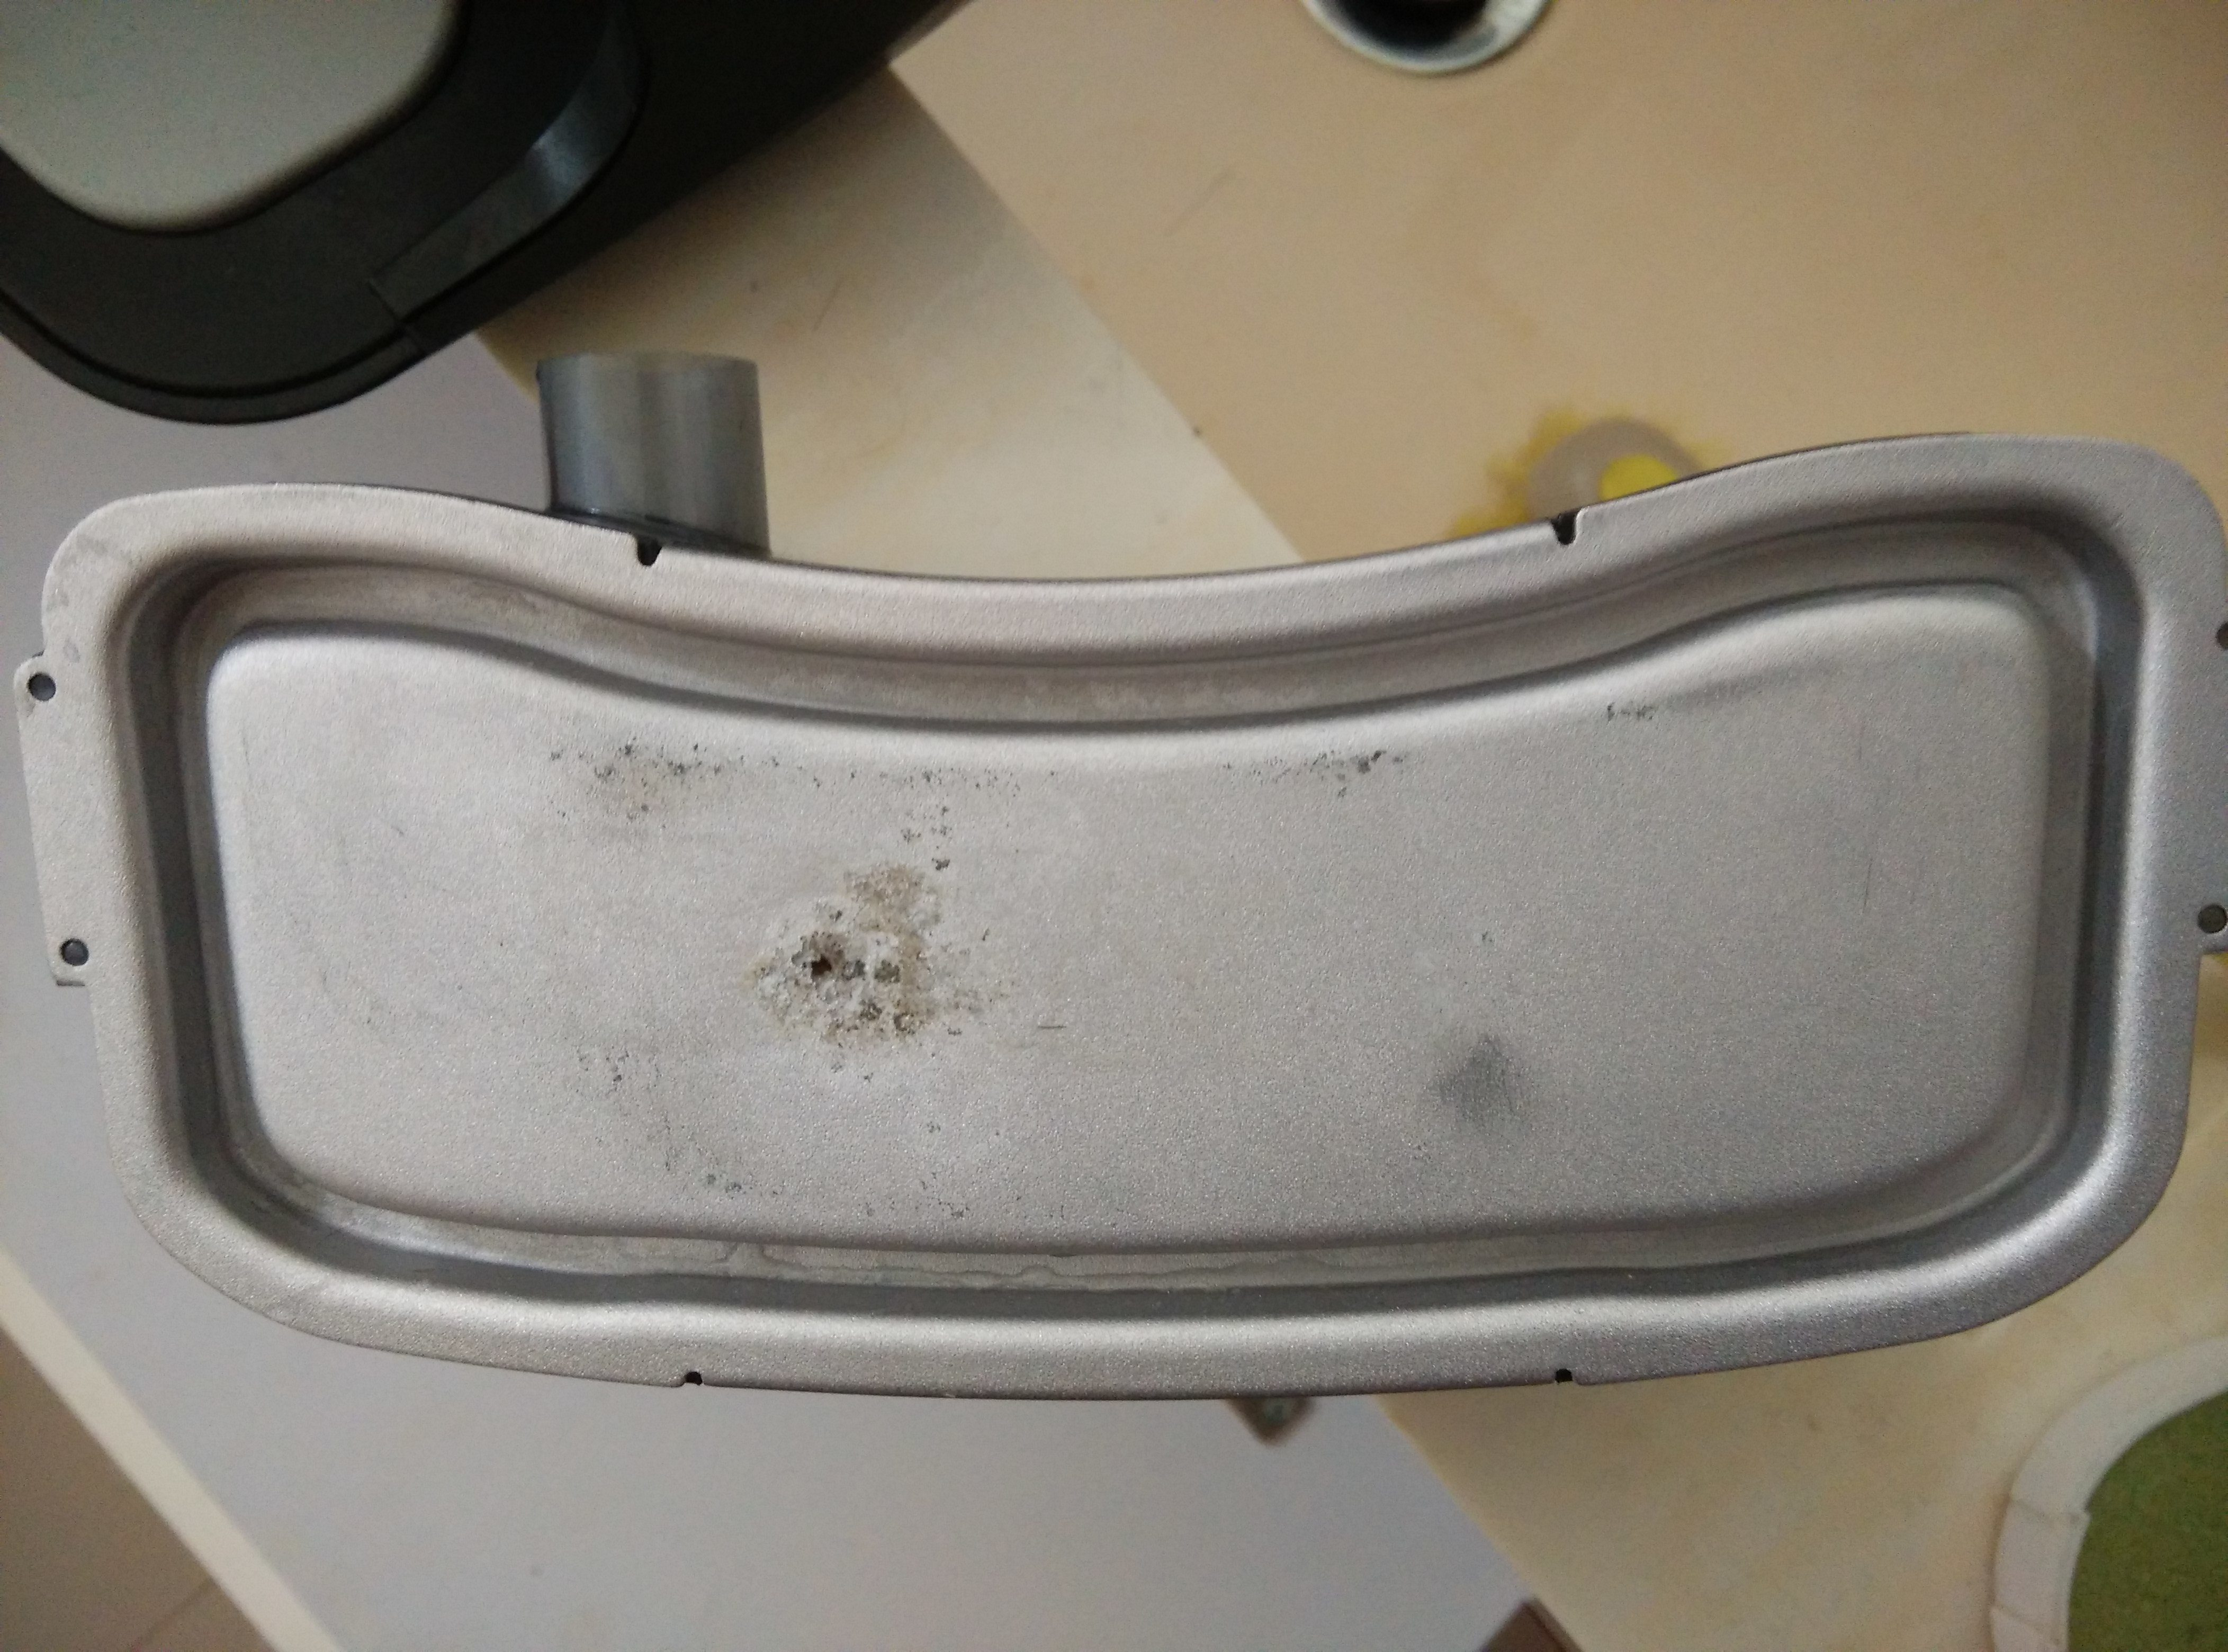 Damage caused to the metal heating plate by sediment build up